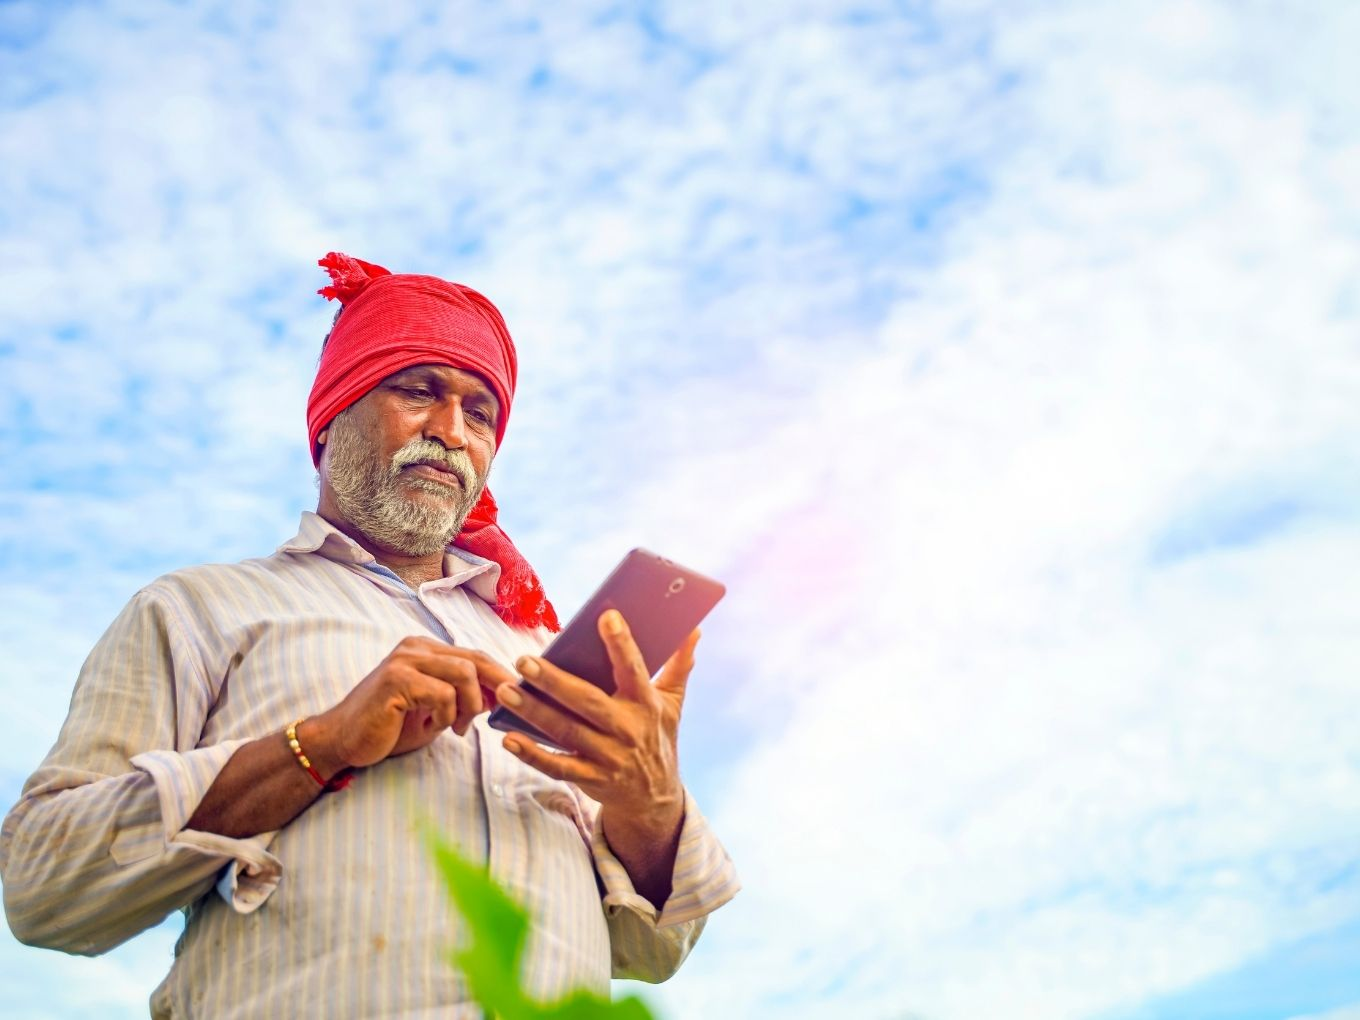 Can BigHaat Scale Its Business By Making Farmers Pay For Its Crop Advisory Services?